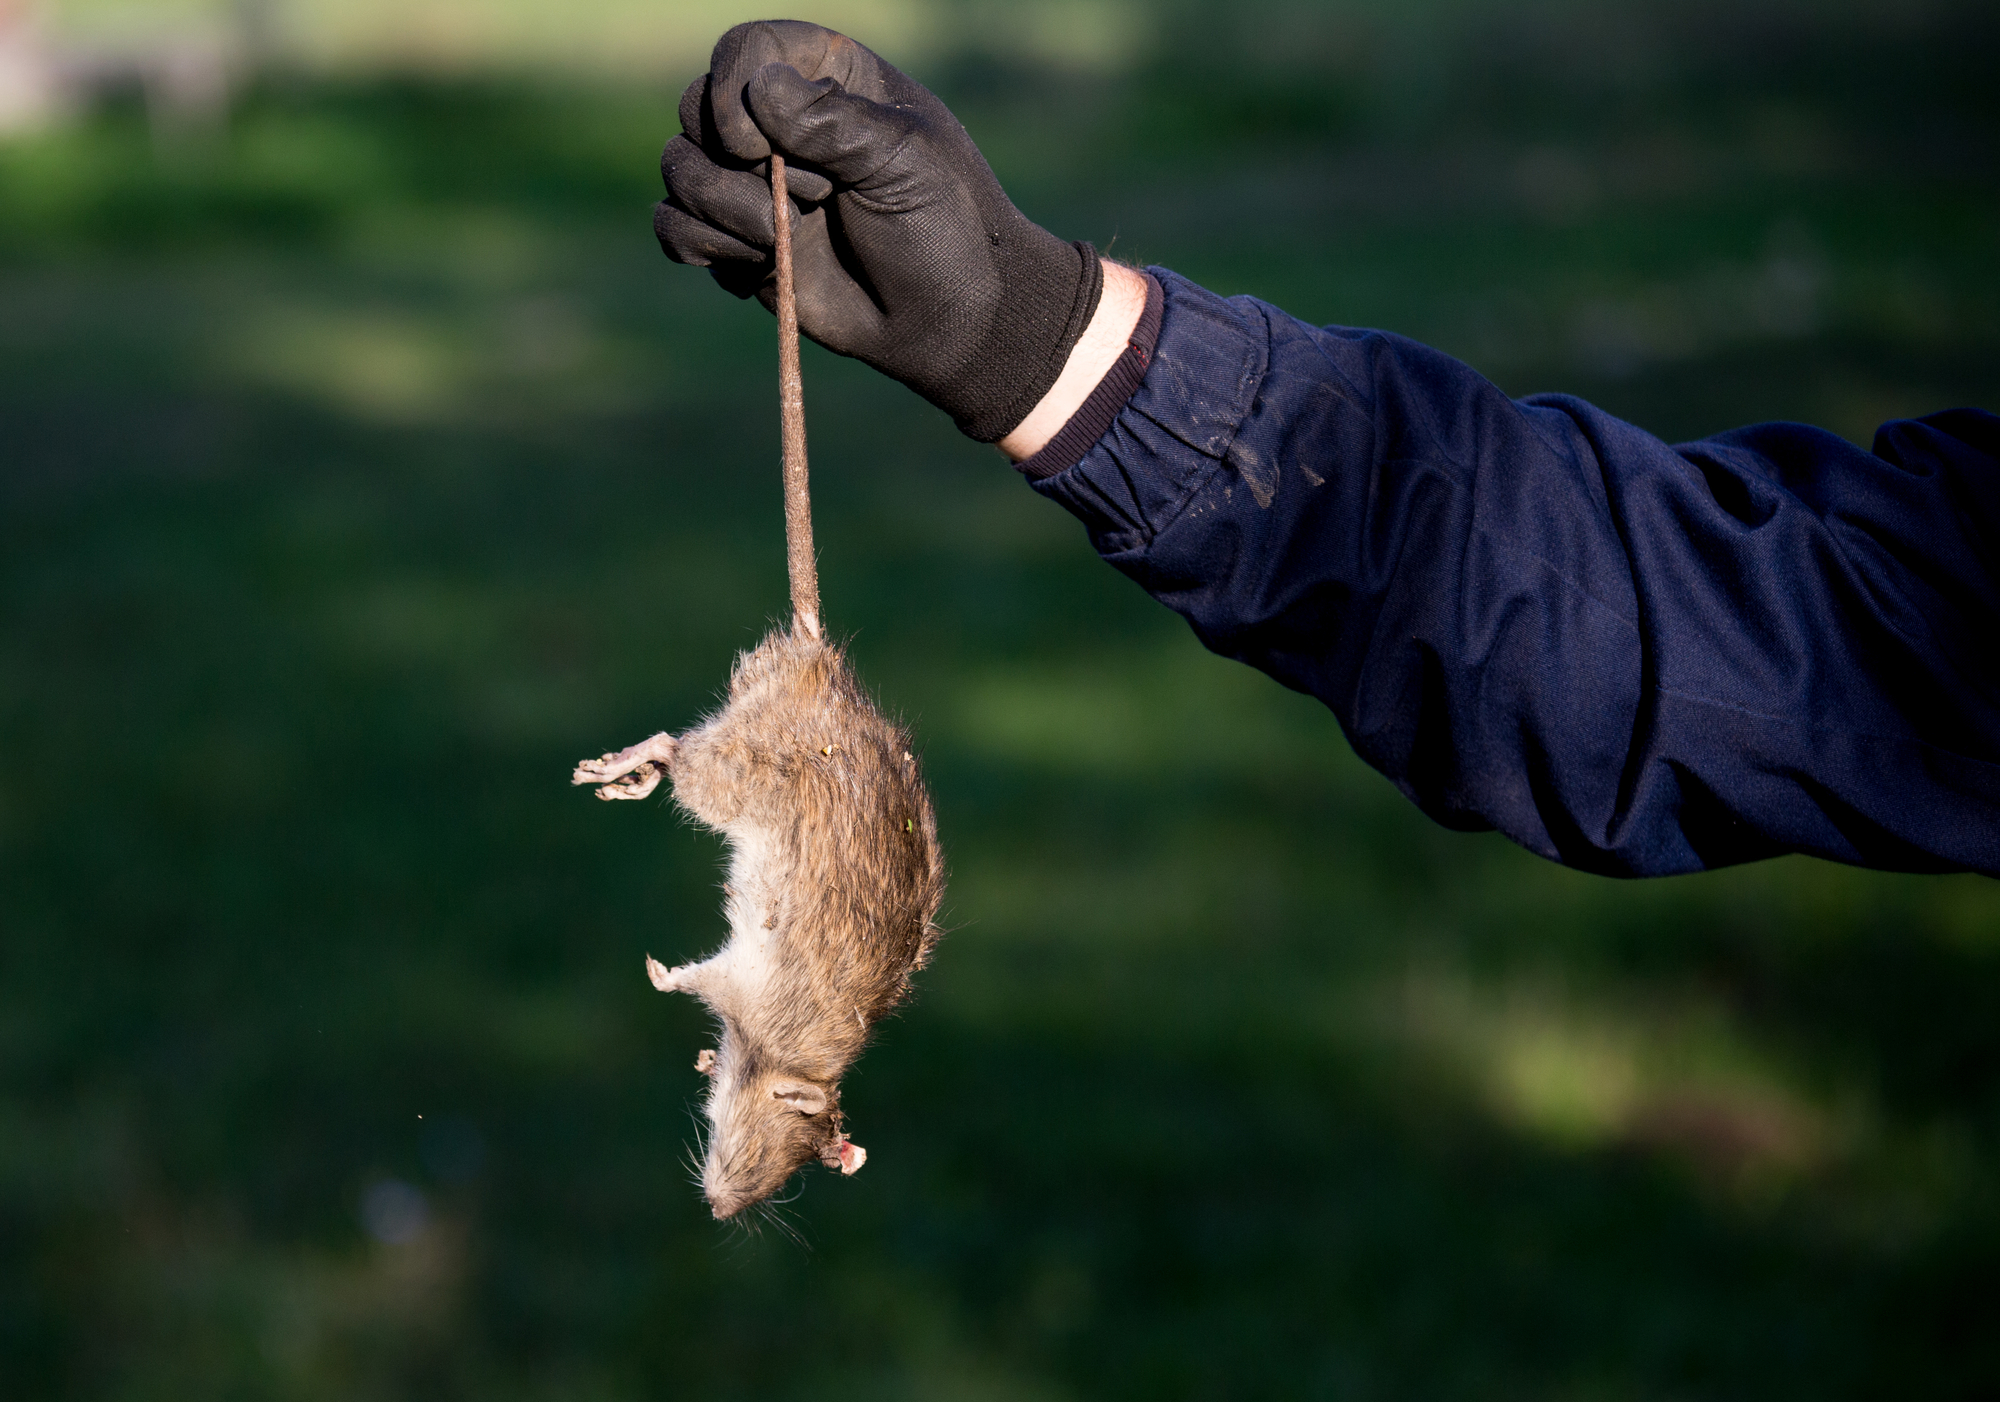 Man's Arm Holding A Dead Rat